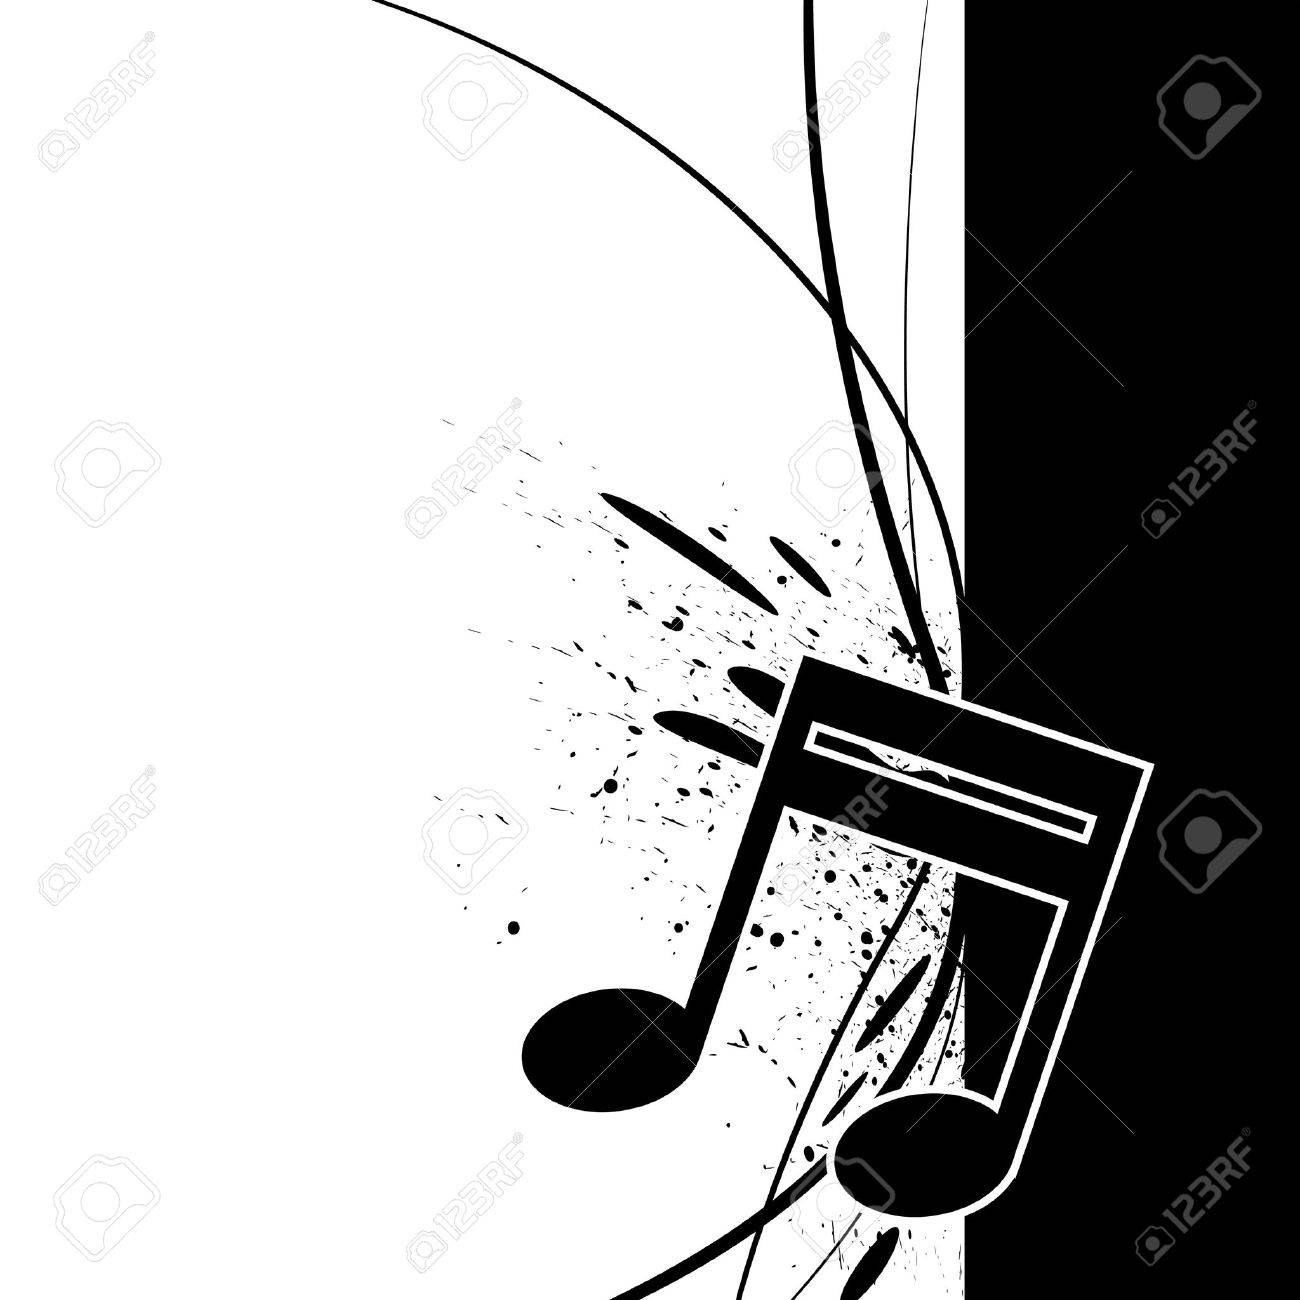 Musical notes staff background on white vector by tassel78 image - Musical Note Music Note With Ink Splatter Illustration